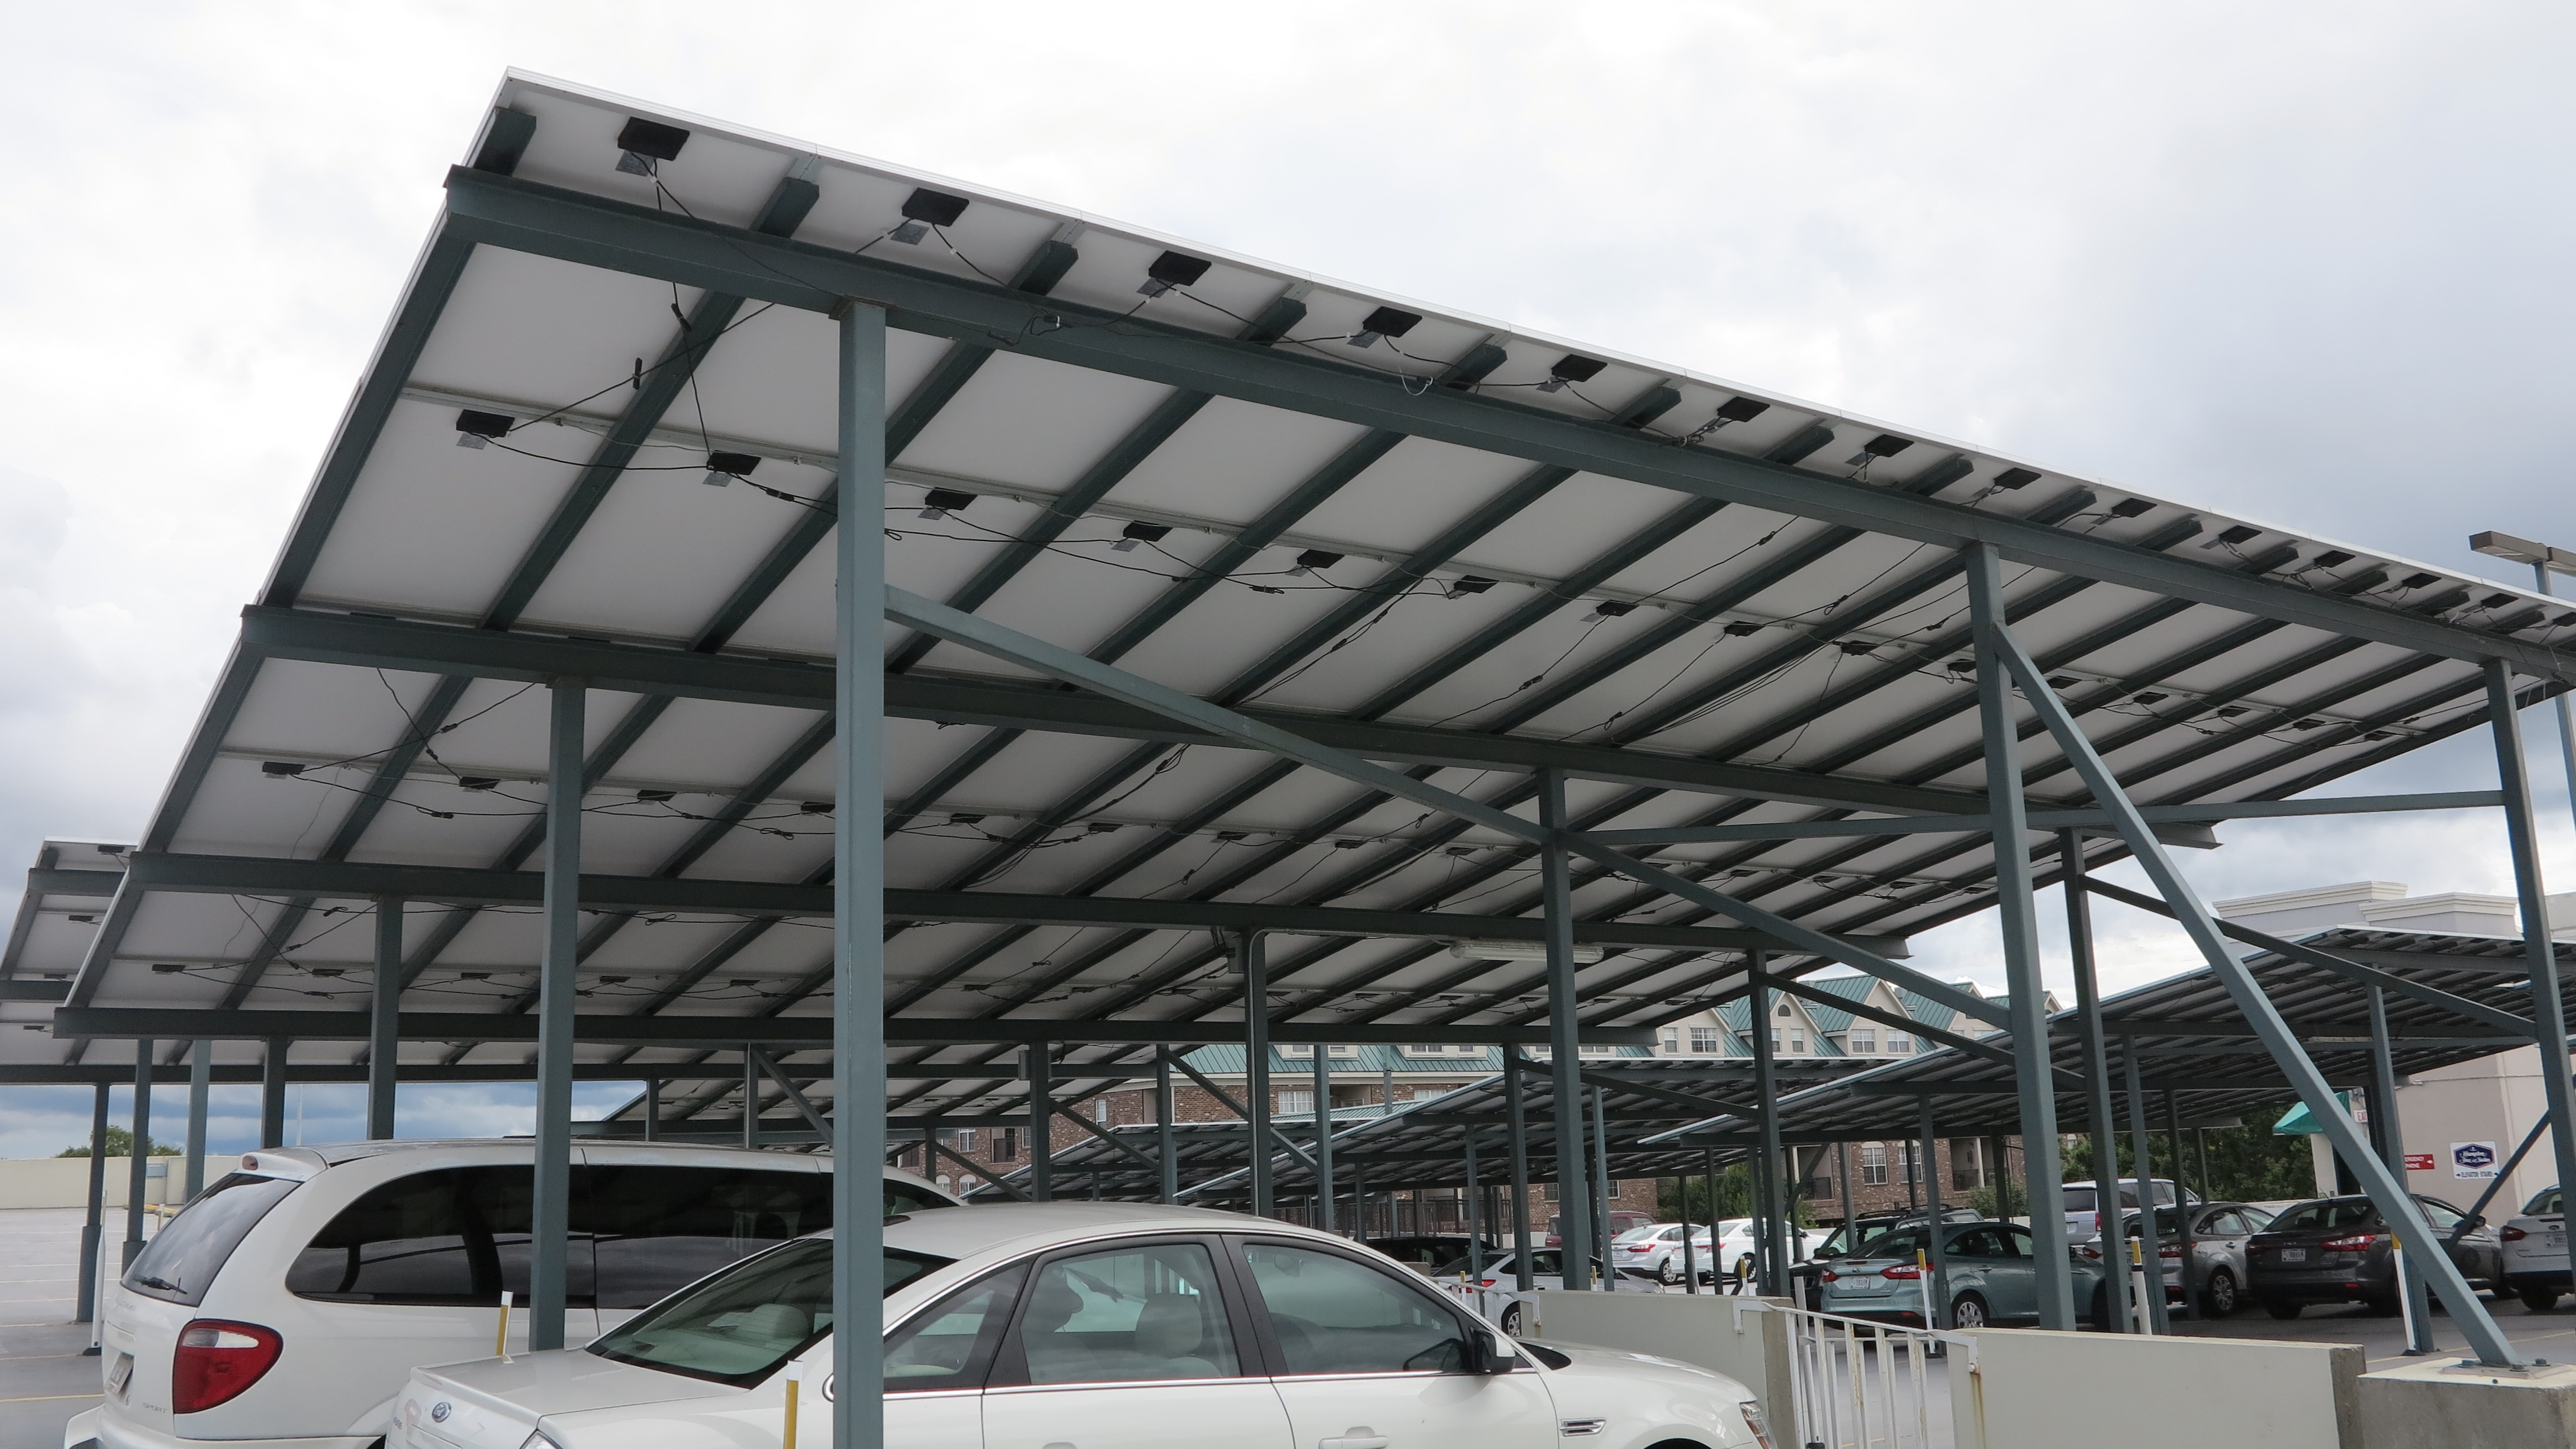 Solar panels of Gainesville Downtown parking garage from below2